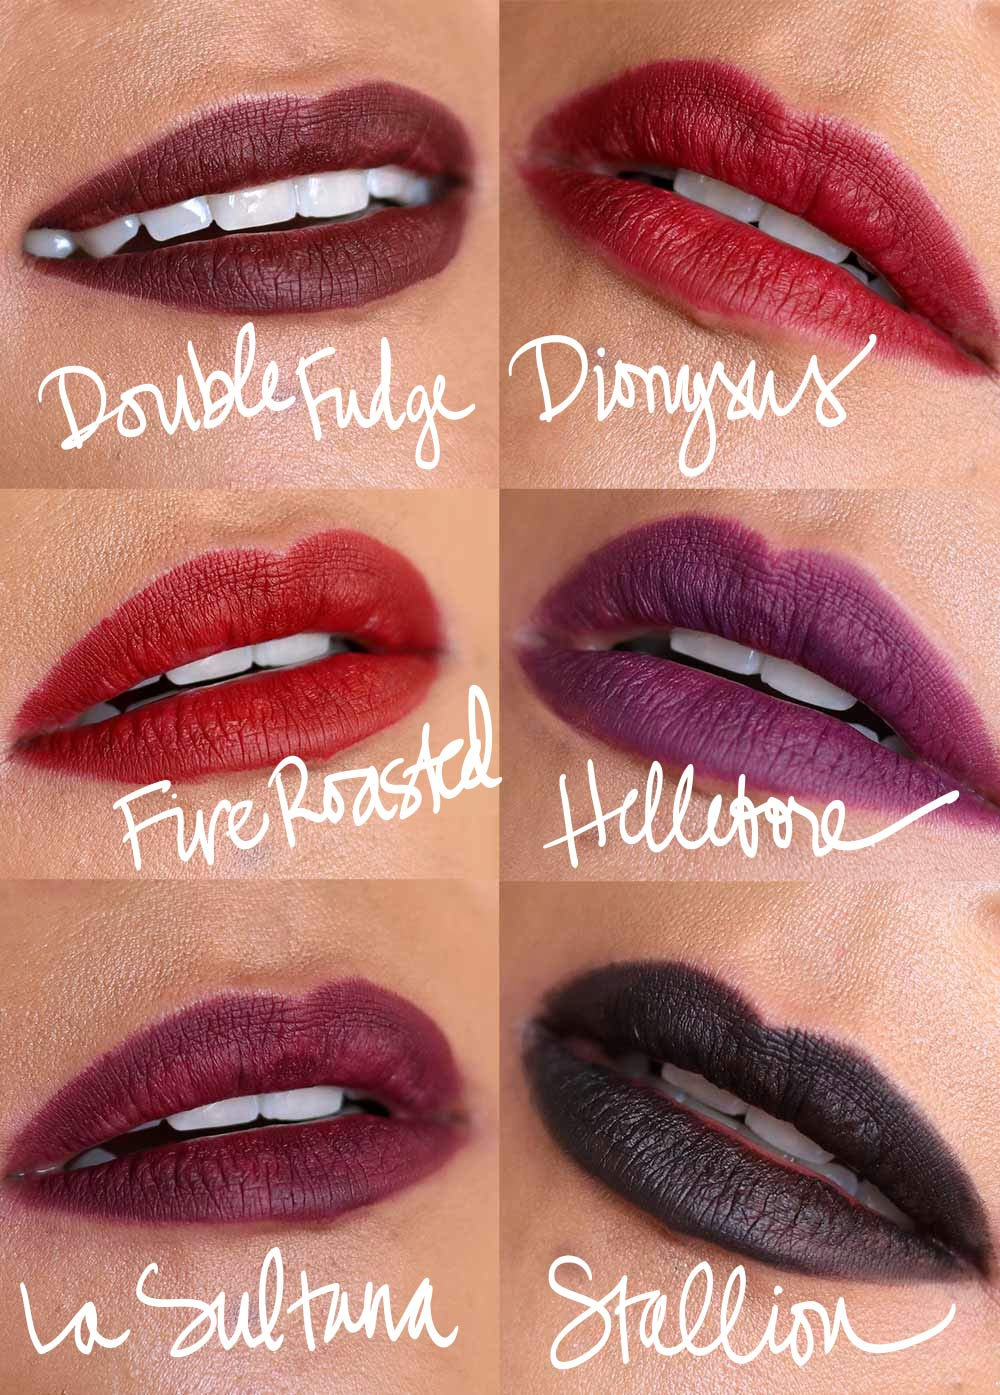 mac liptensity lip pencil swatches 4